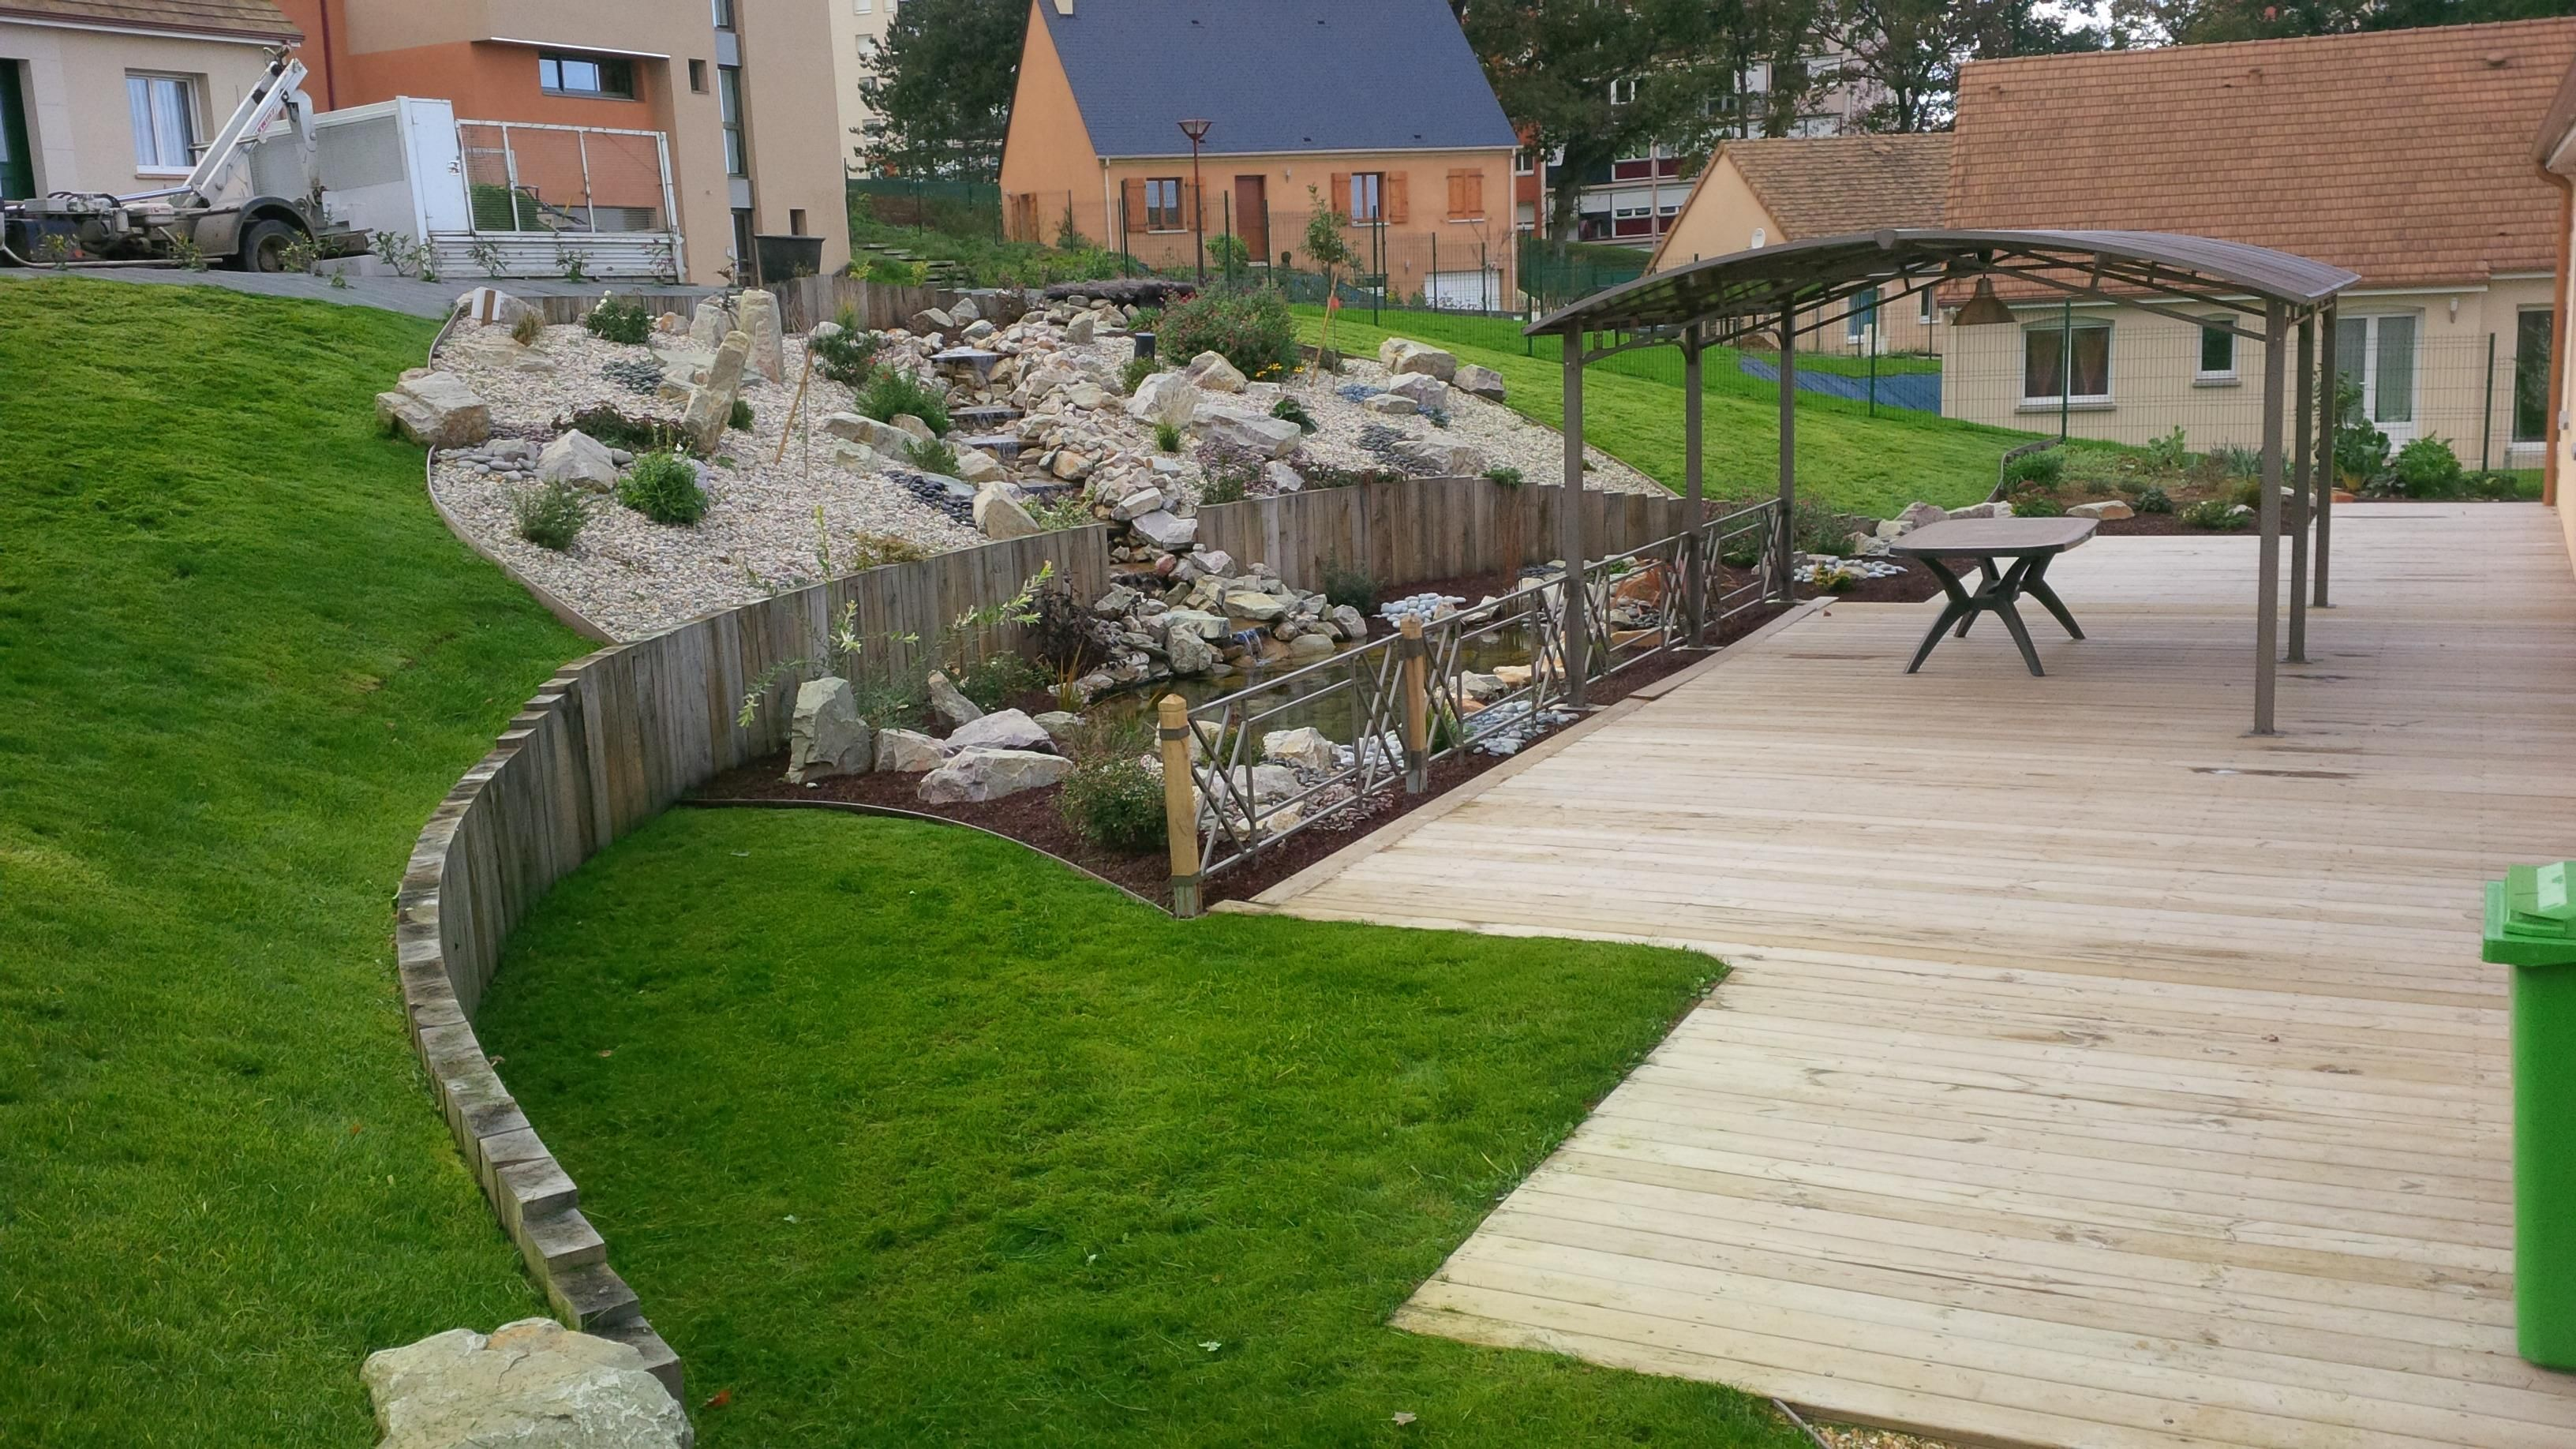 Jardin en pente am nagement paysager butte pinterest for Amenagement talus jardin